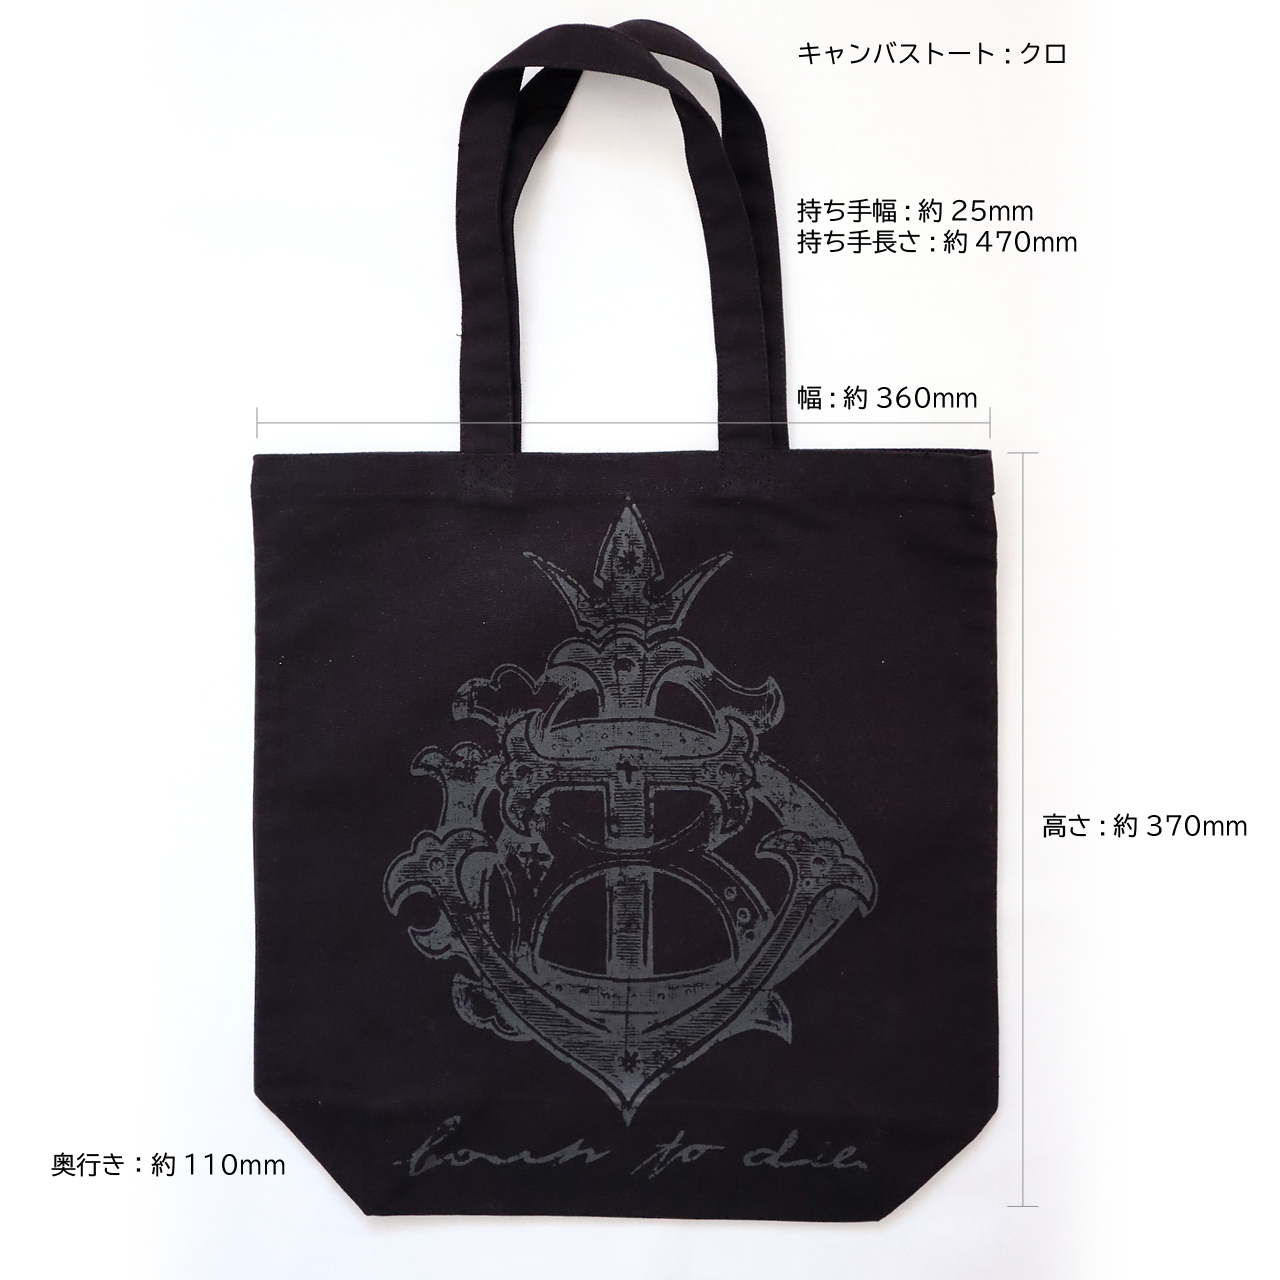 トートBAG:『Anchor』DieodeDesign - 画像2